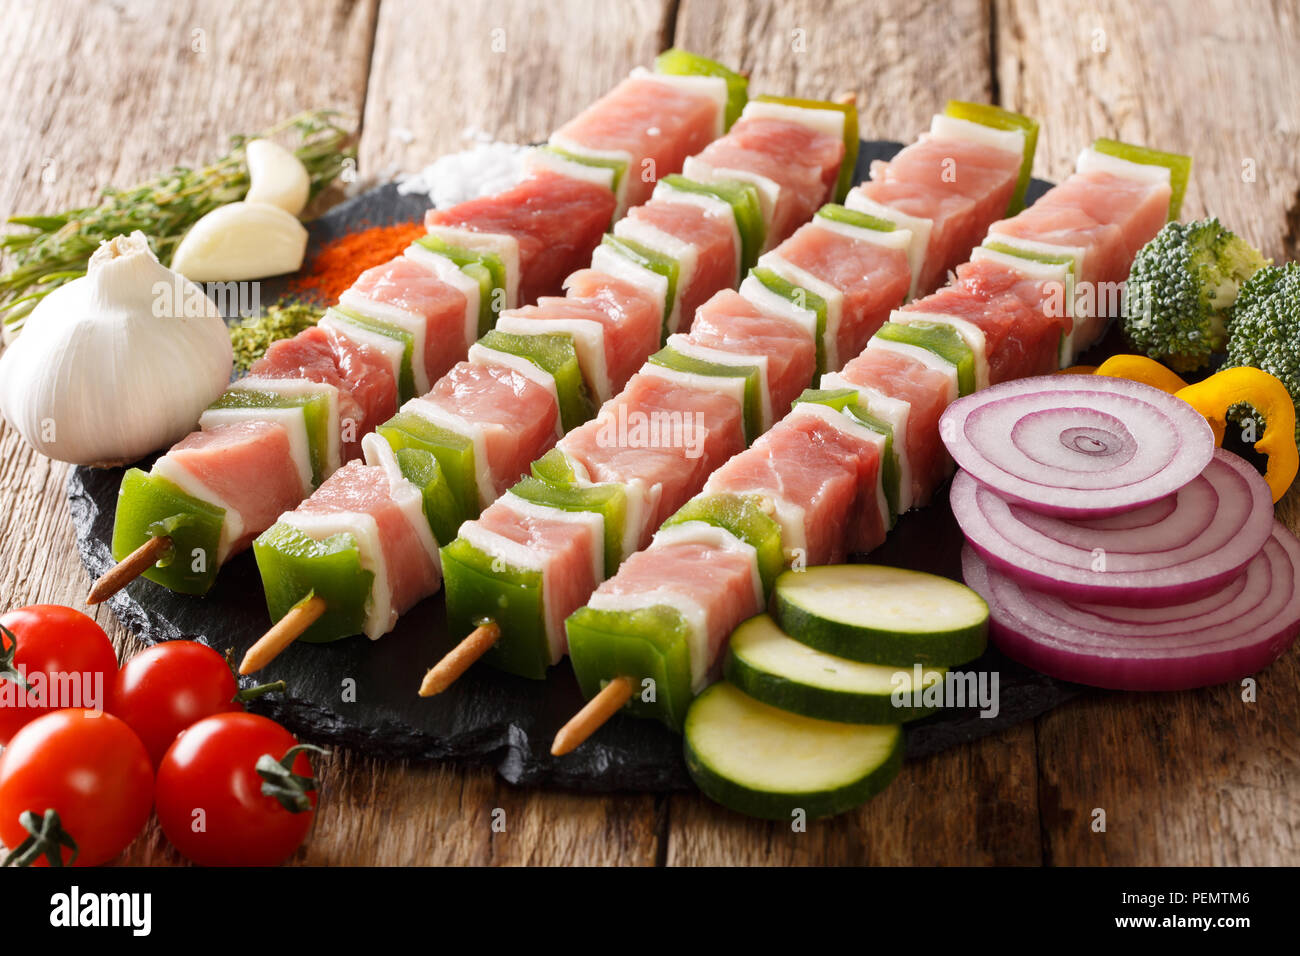 For barbecue raw shish kebab with pepper and lard on skewers close-up and ingredients, vegetables, spices, herbs on the table. horizontal - Stock Image